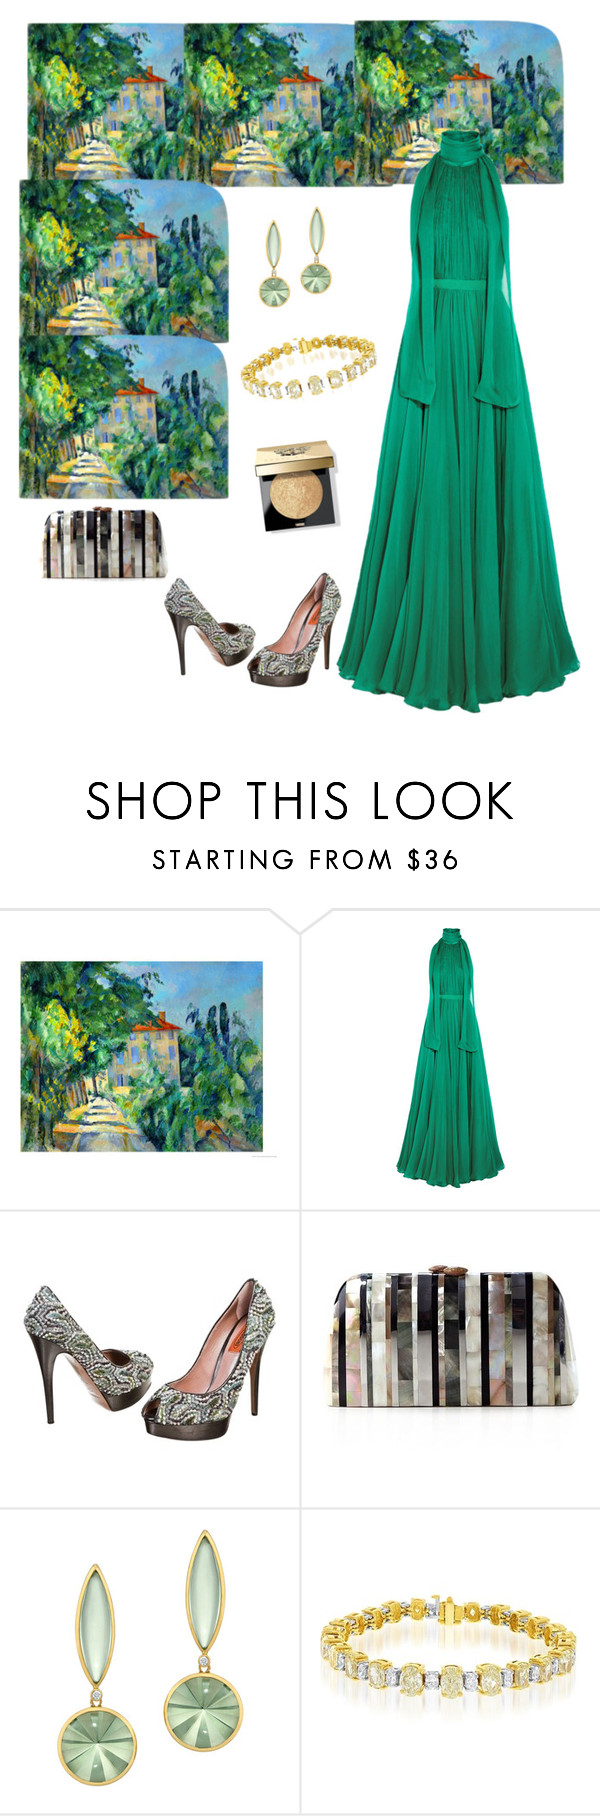 """Artistic Gown💛🌻"" by parnett ❤ liked on Polyvore featuring Alexander McQueen, Missoni, Serpui and Bobbi Brown Cosmetics"